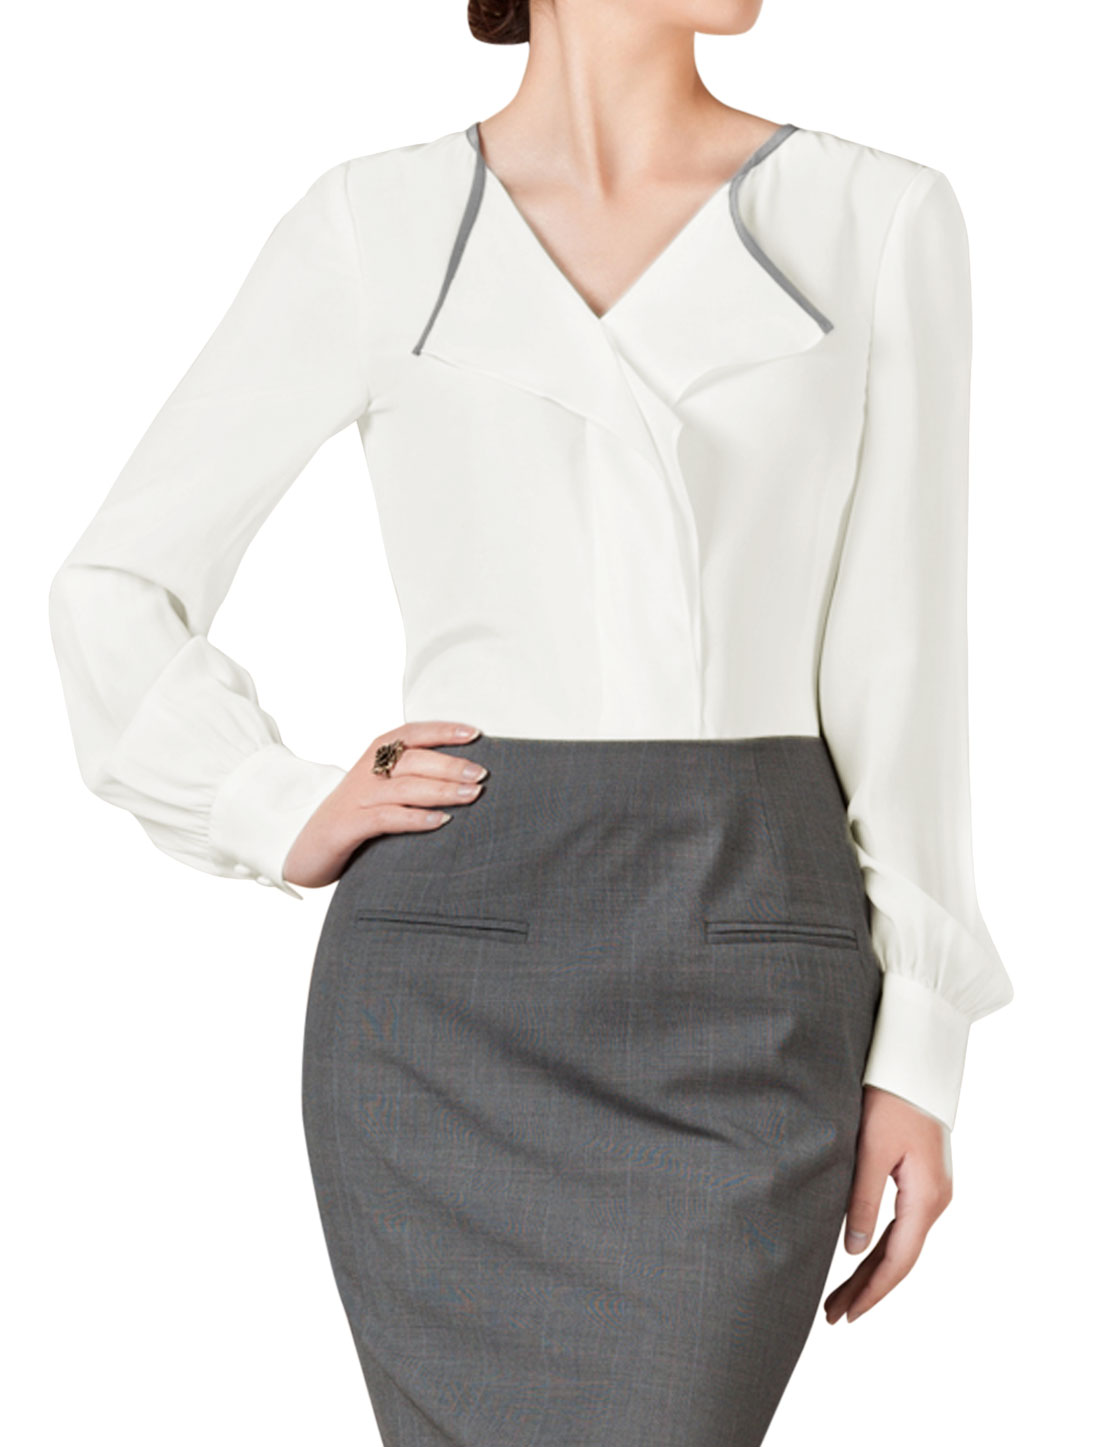 Ladies White Pullover Panel Embellished Button Cuffs Slim Fit Blouse S